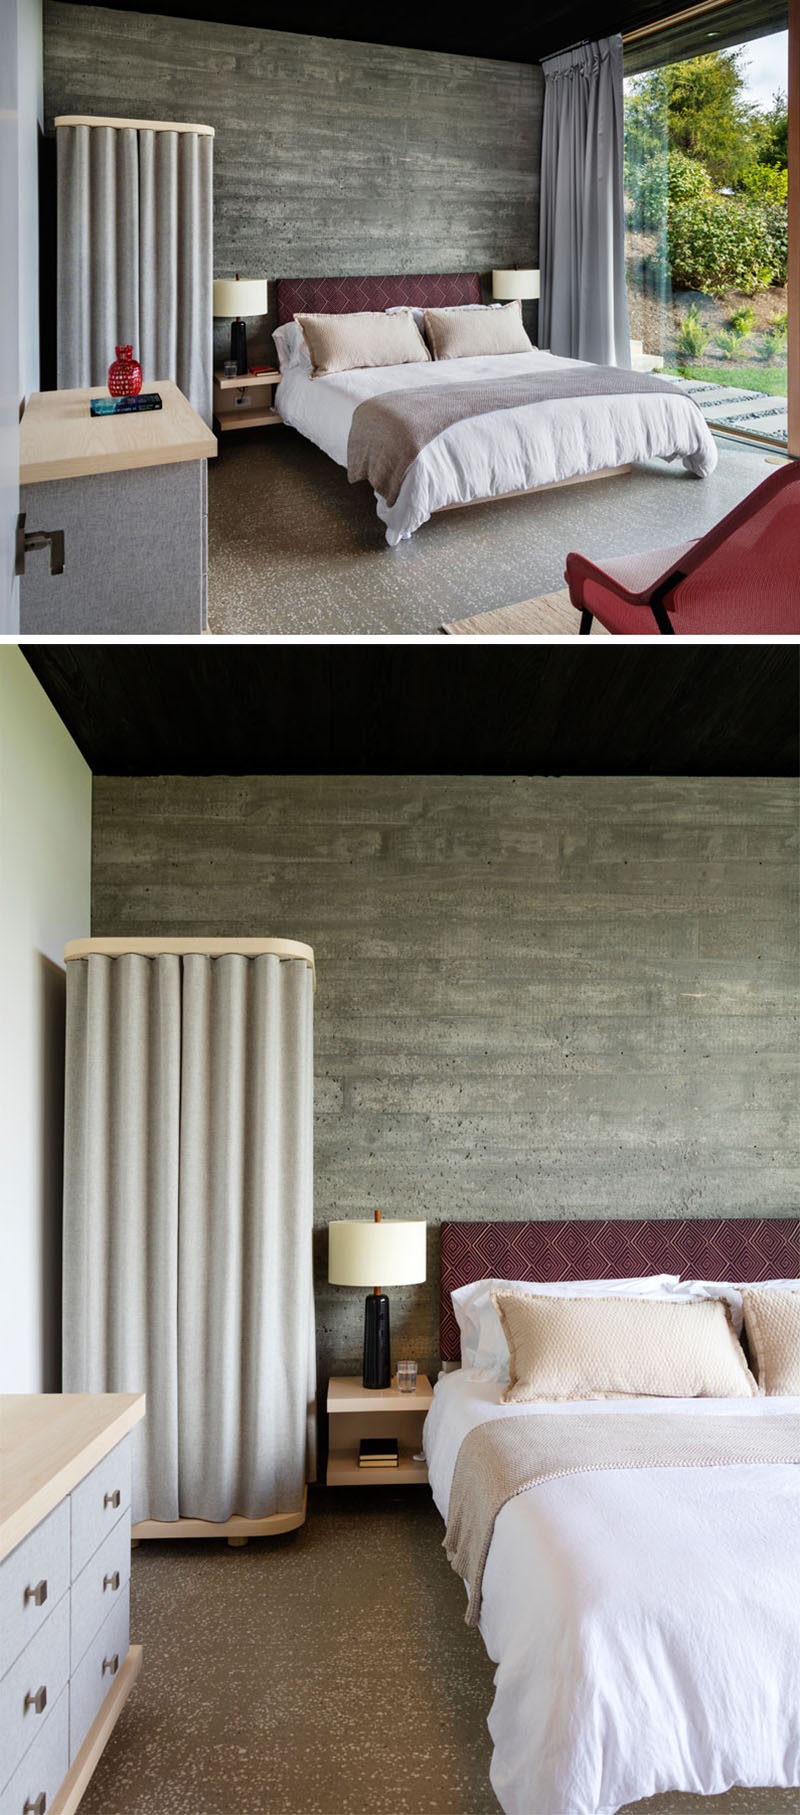 This modern bedroom has kept the concrete wall in its natural state, and it's softened by the use of grey curtains. Pops of deep red add a touch of color to the bedroom.